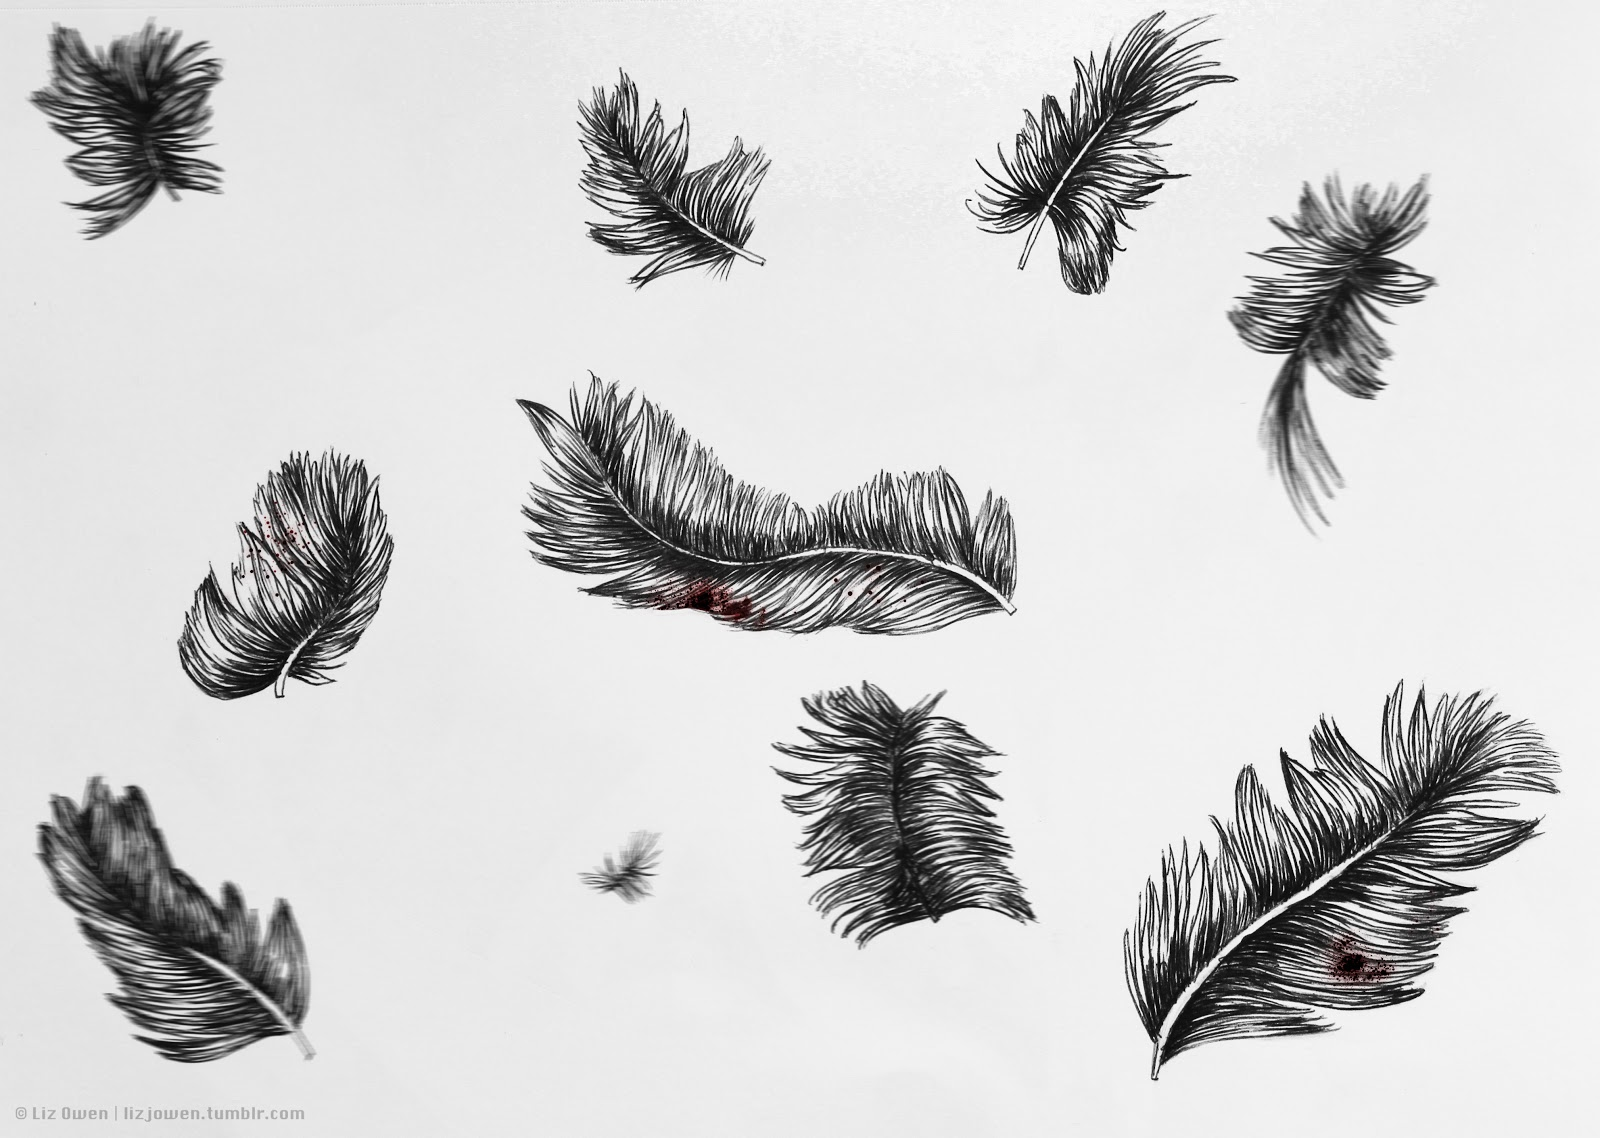 liz owen graphic design and illustration falling feathers